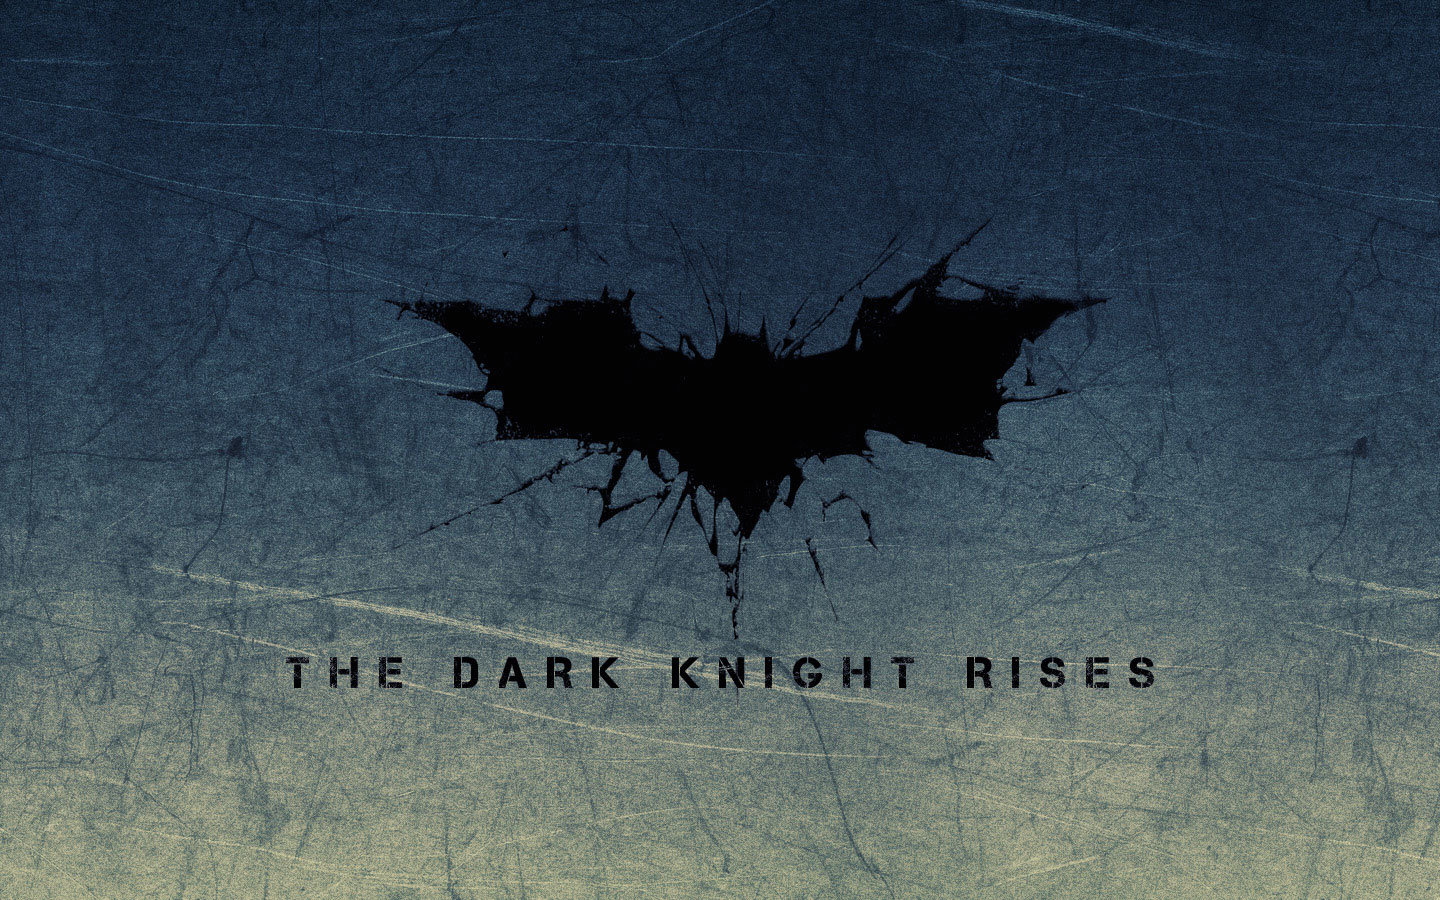 The Dark Knight Rises Wallpapers 1440x900 Desktop Backgrounds